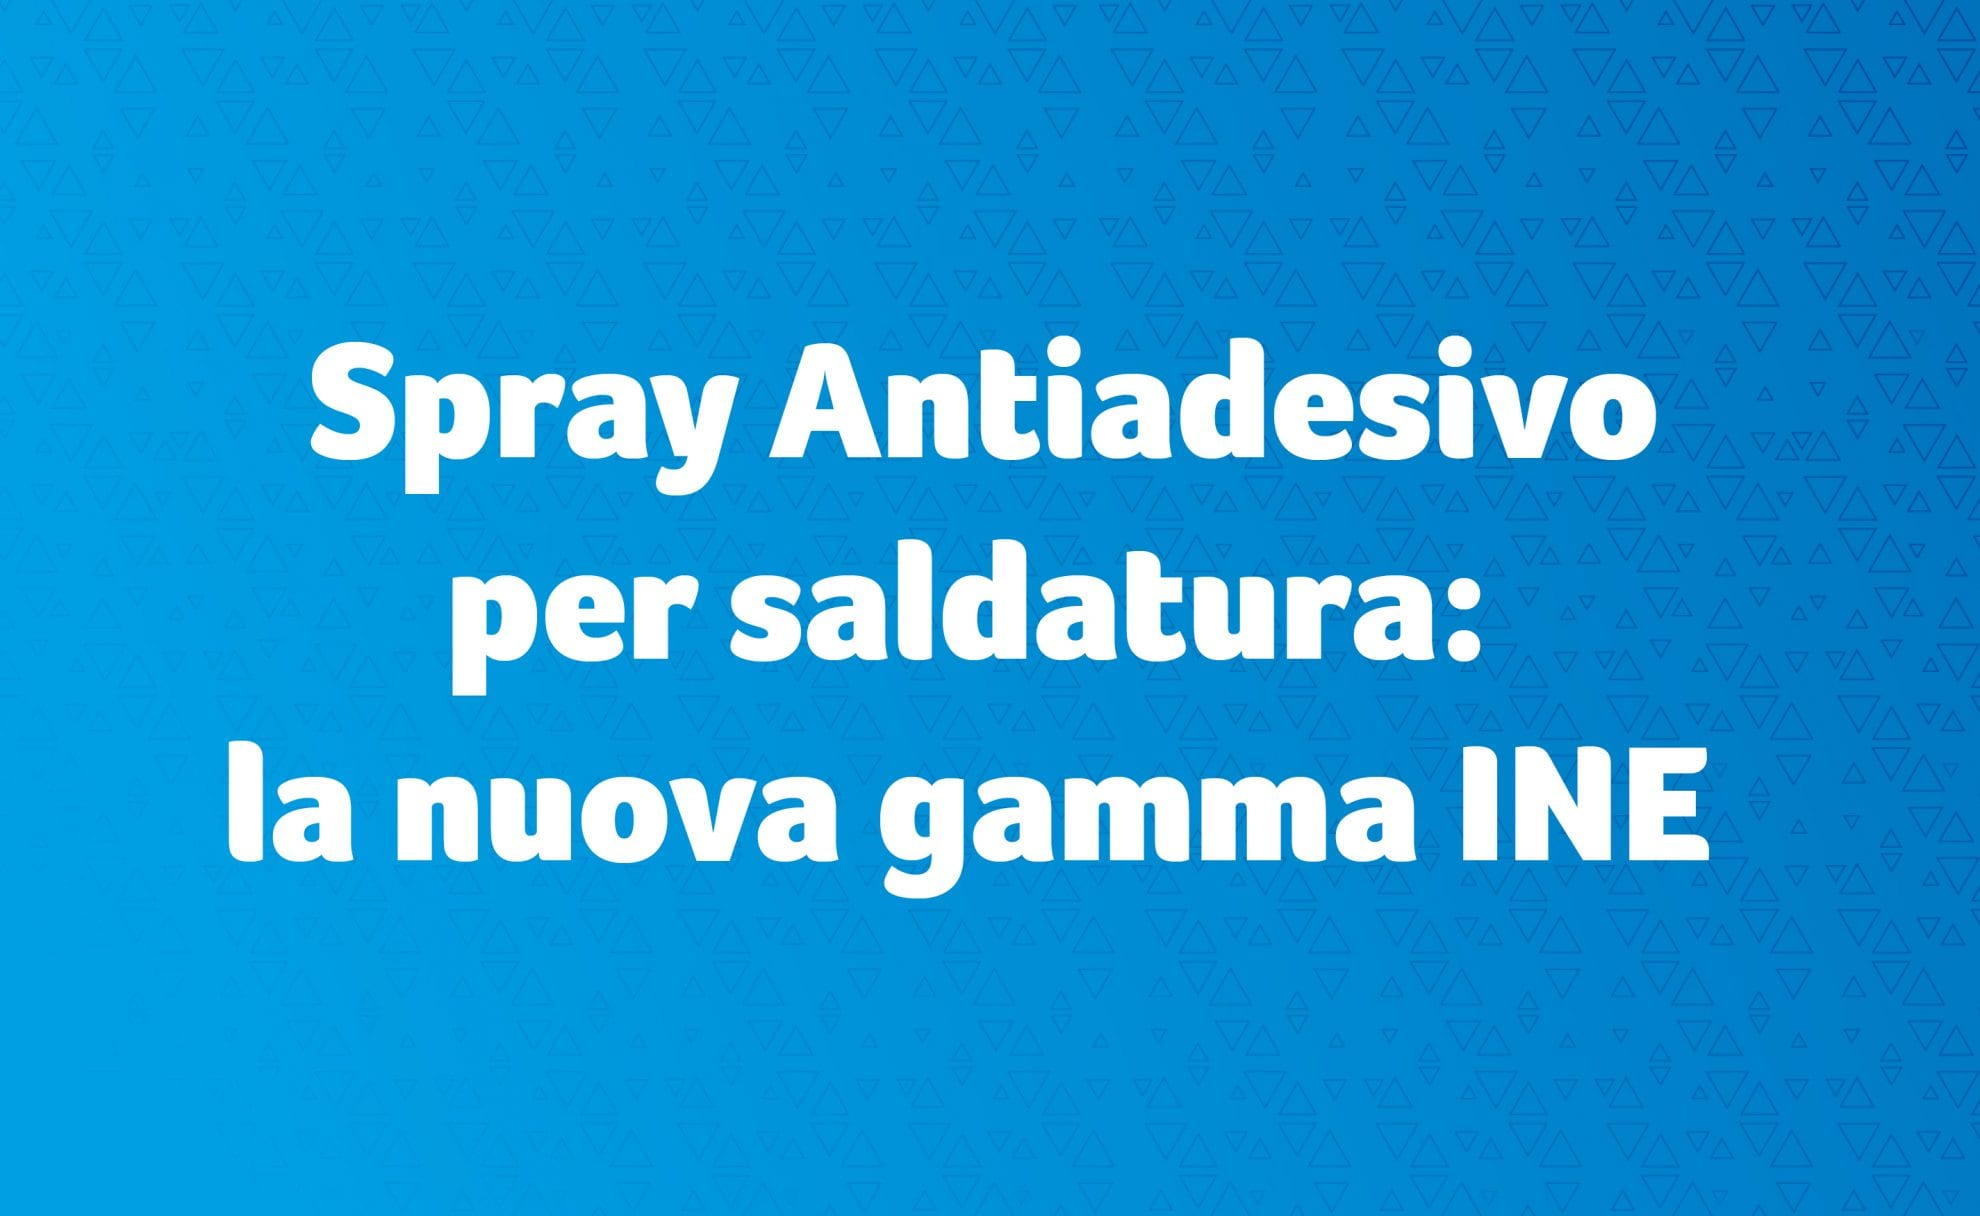 Spray antiadesivo per saldatura